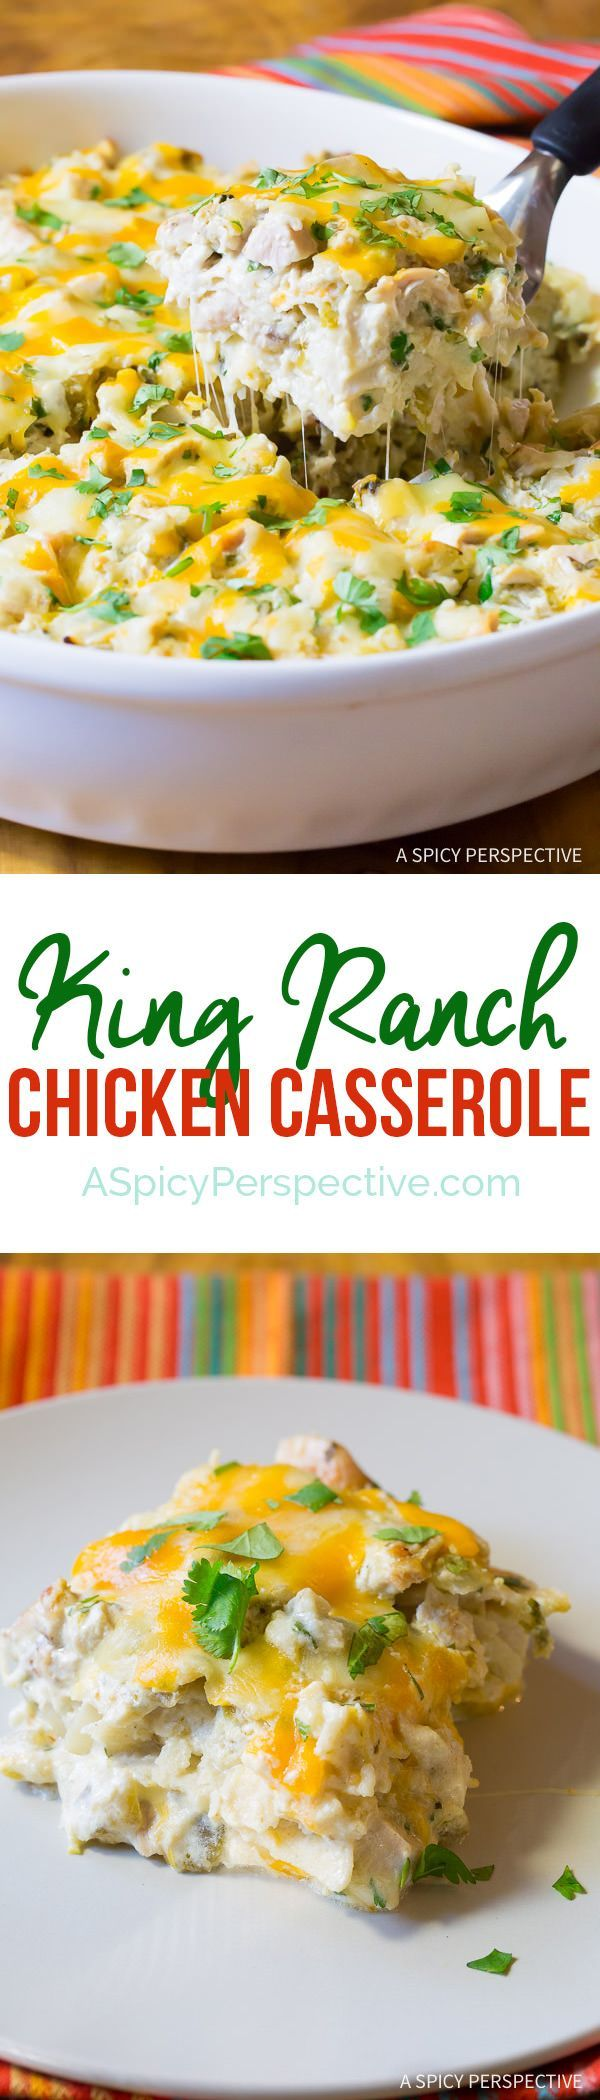 The BEST King Ranch Chicken Casserole Recipe | ASpicyPerspective.com